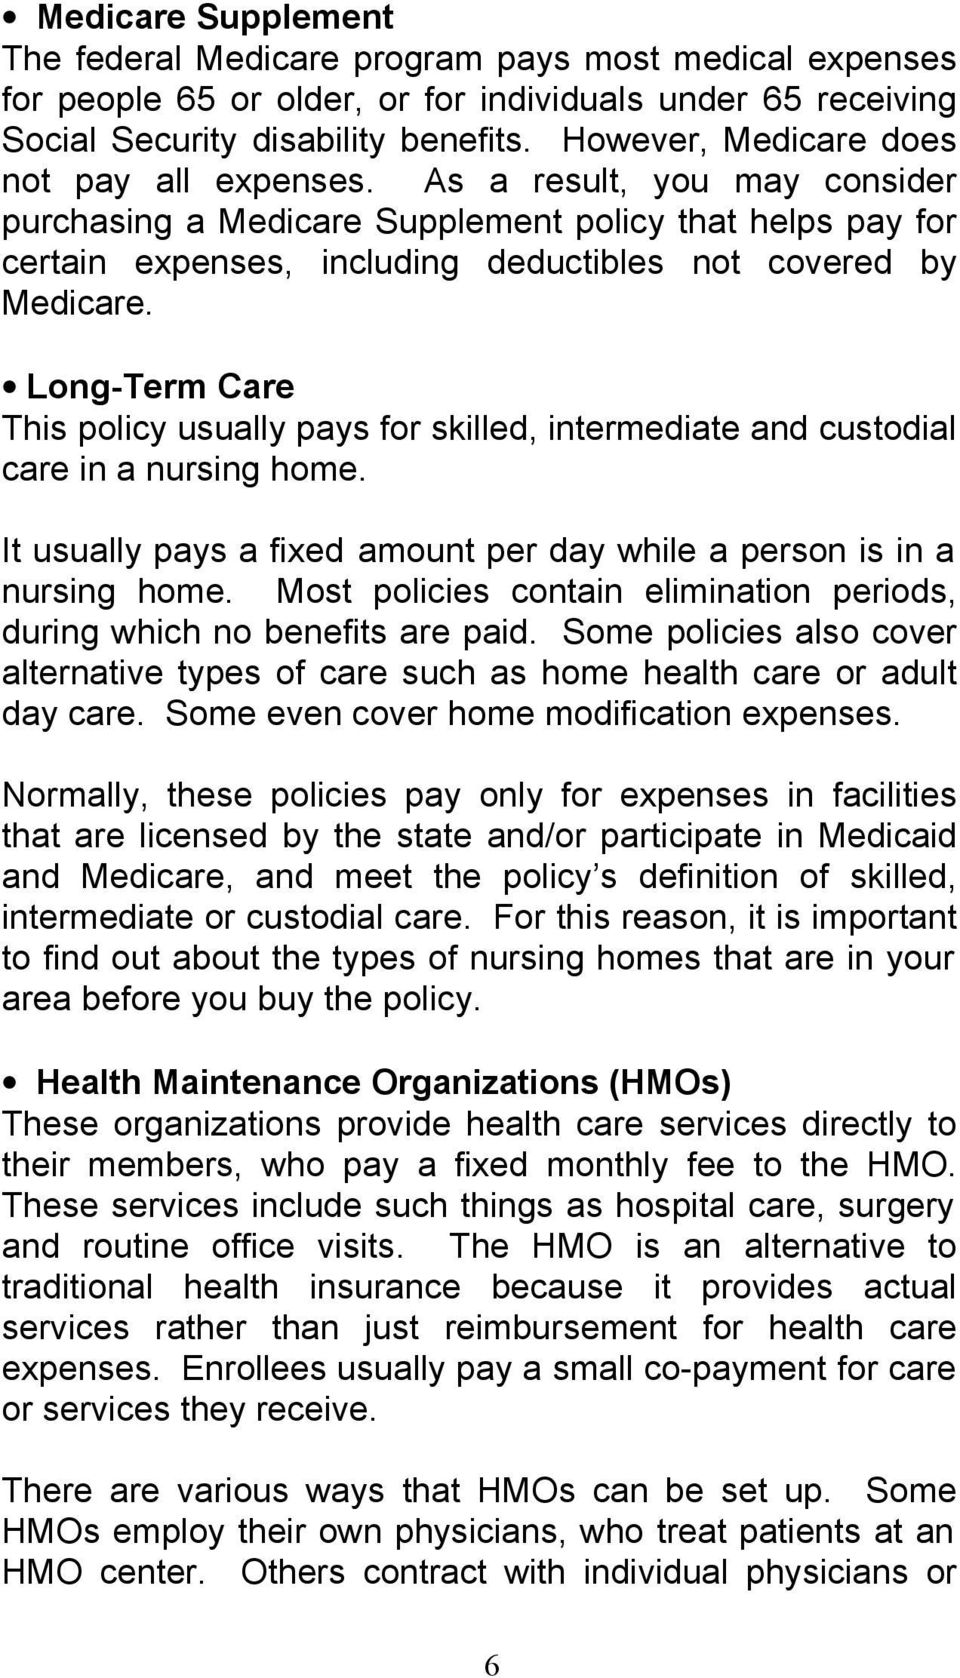 Long-Term Care This policy usually pays for skilled, intermediate and custodial care in a nursing home. It usually pays a fixed amount per day while a person is in a nursing home.